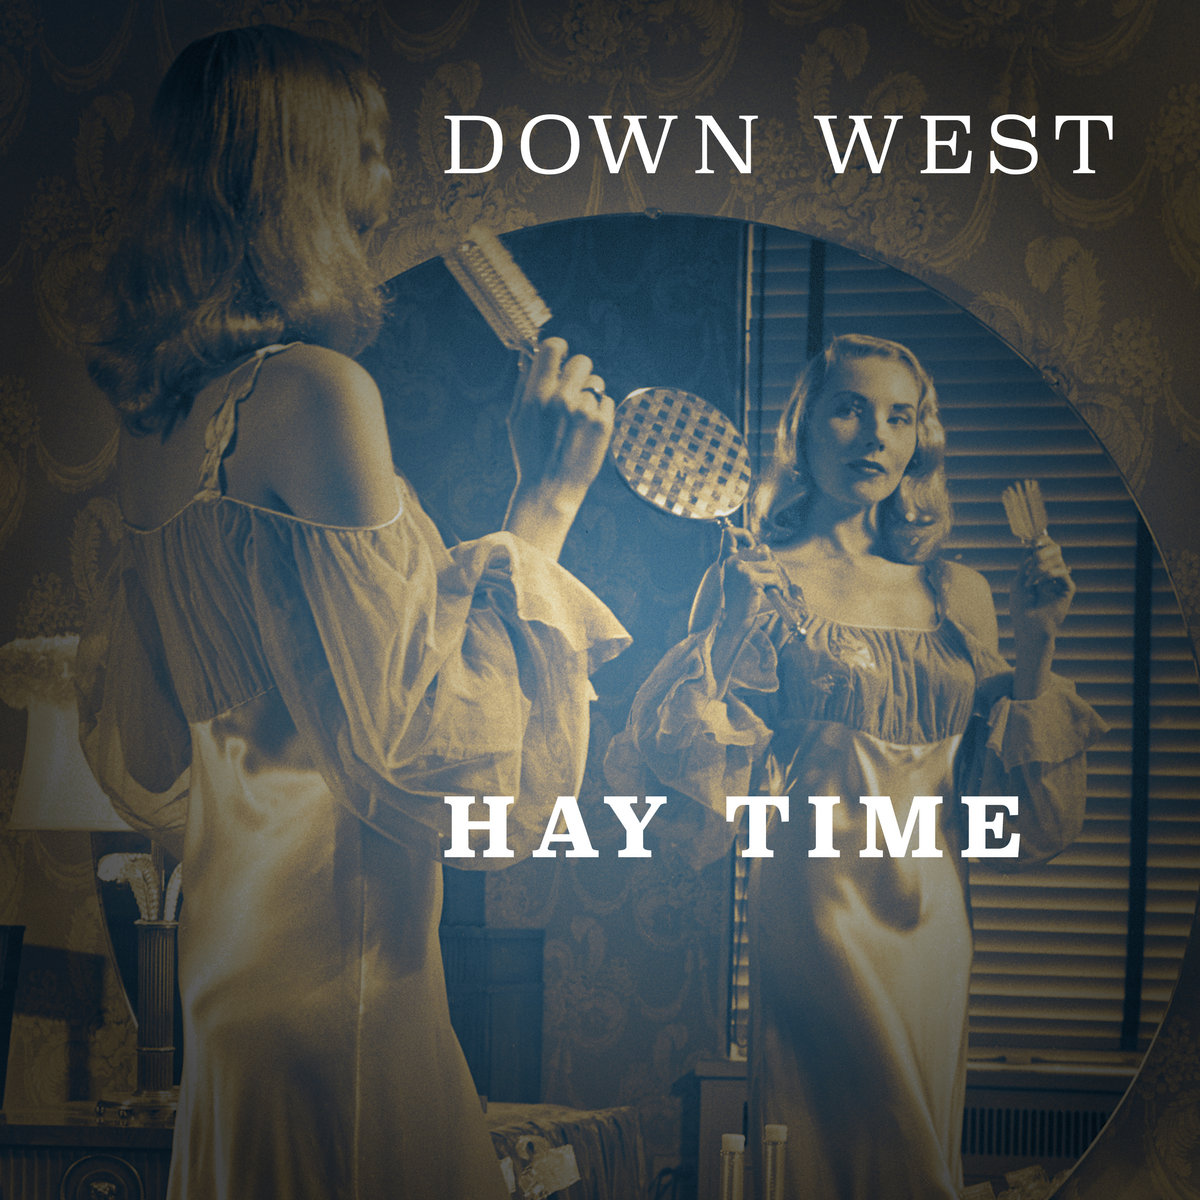 Hay Time by Down West